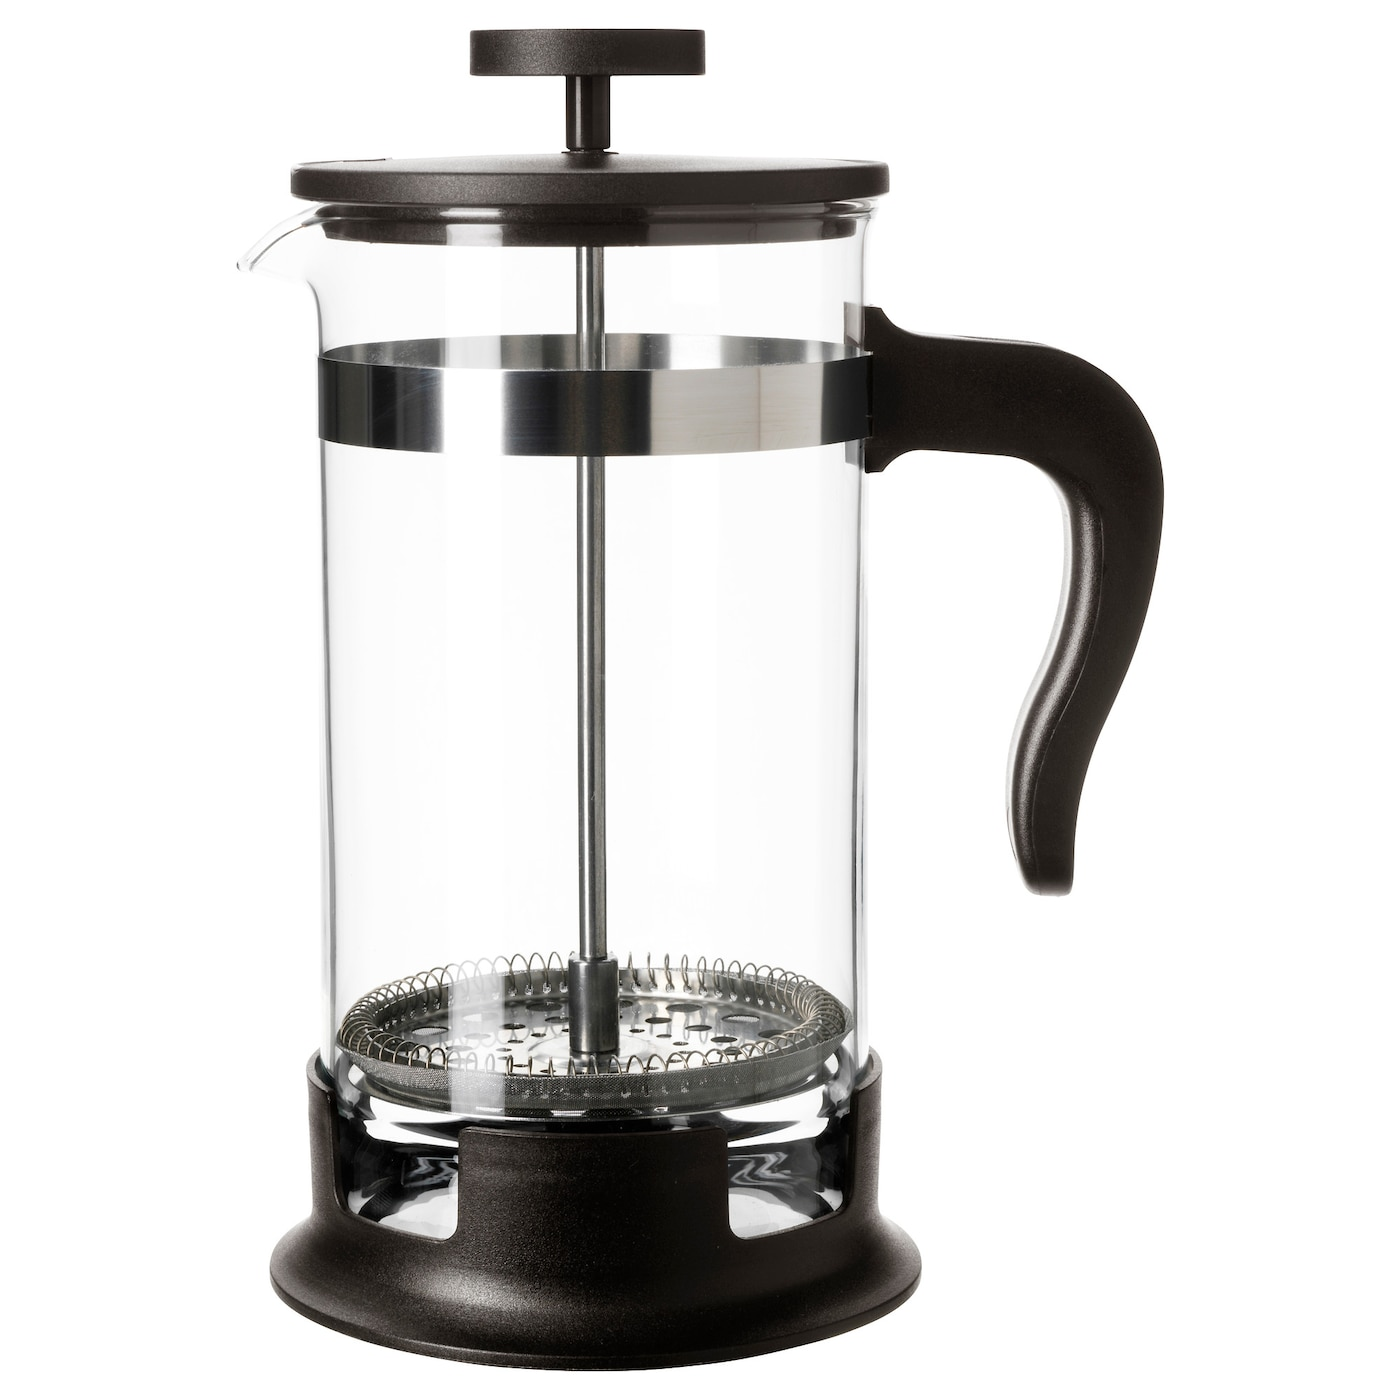 IKEA UPPHETTA coffee/tea maker Can be taken apart for easy cleaning.